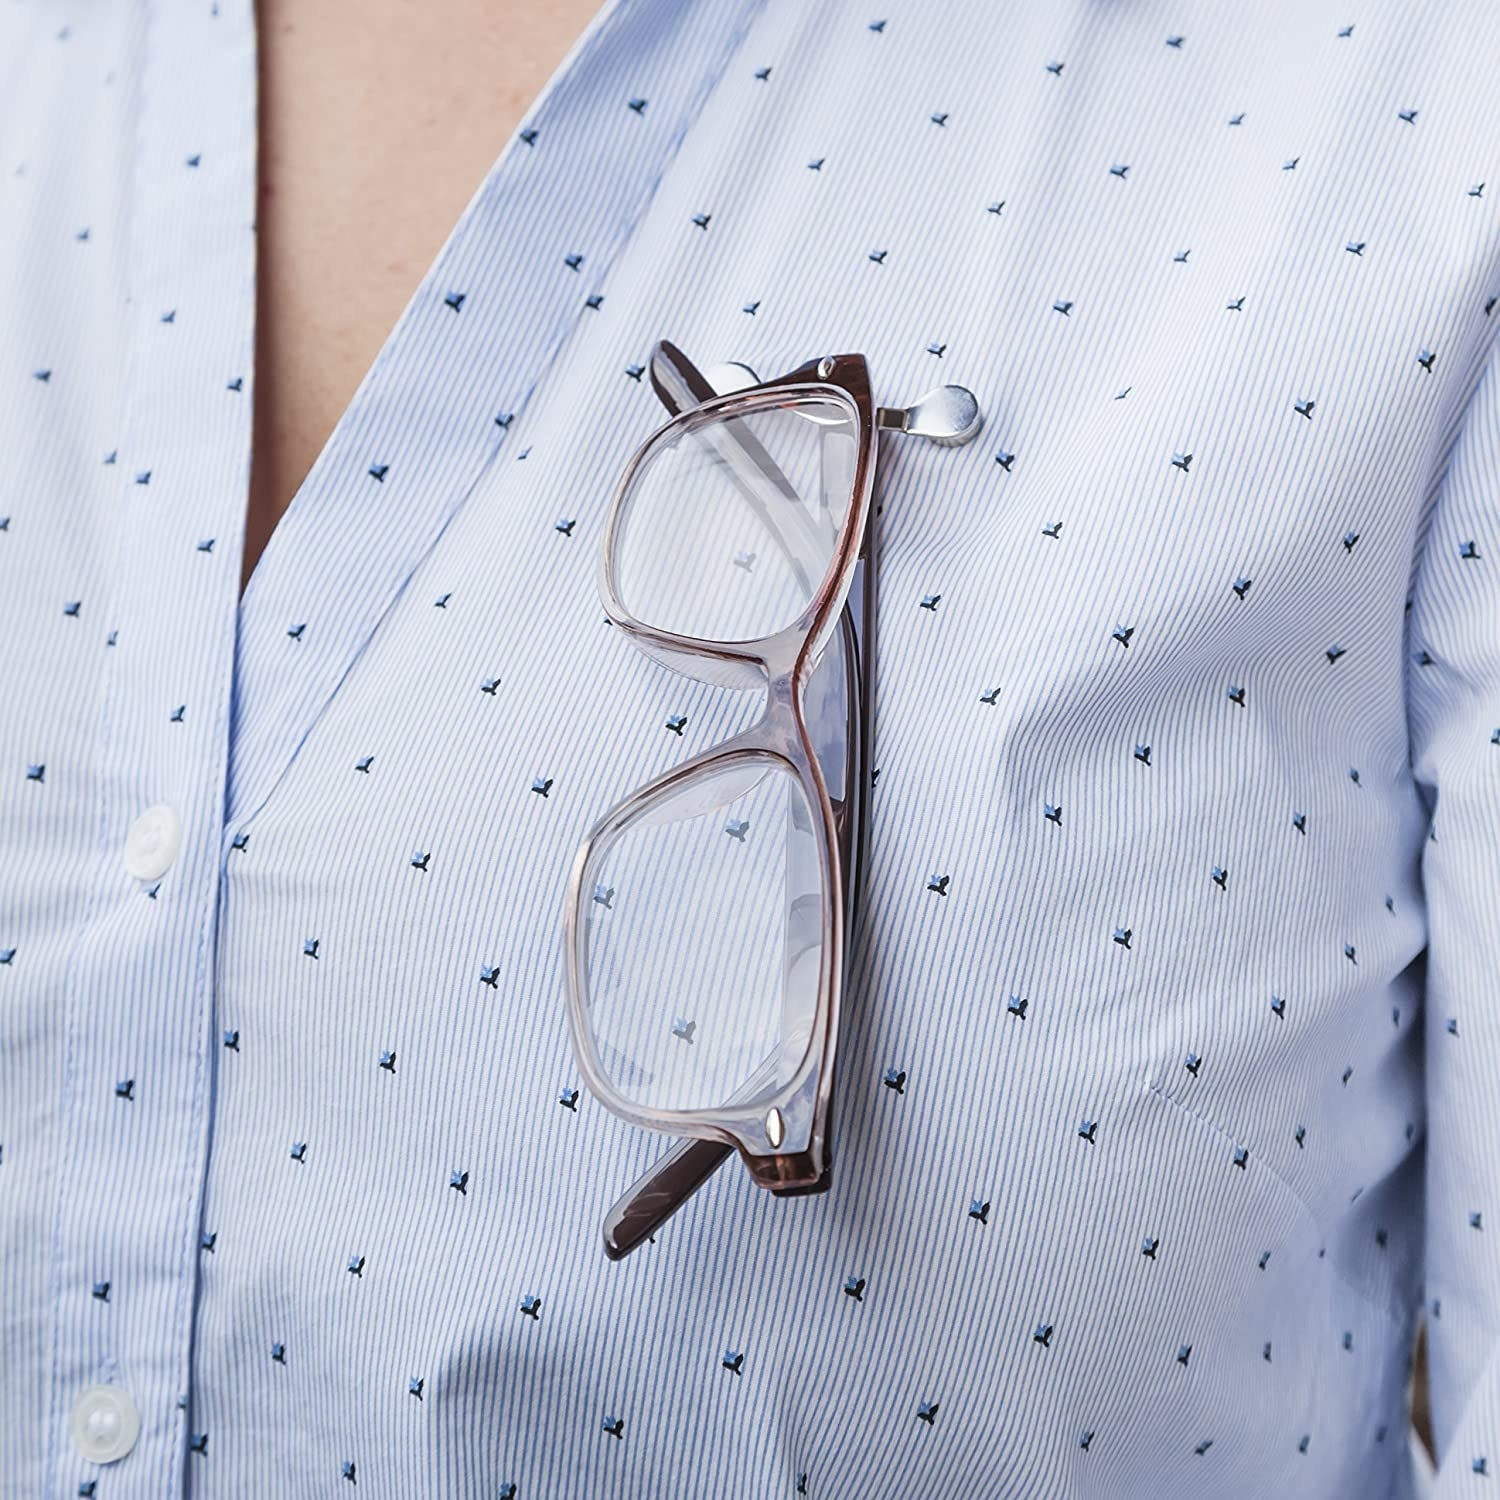 A pair of glasses hanging from a clip attached to a person's button up shirt